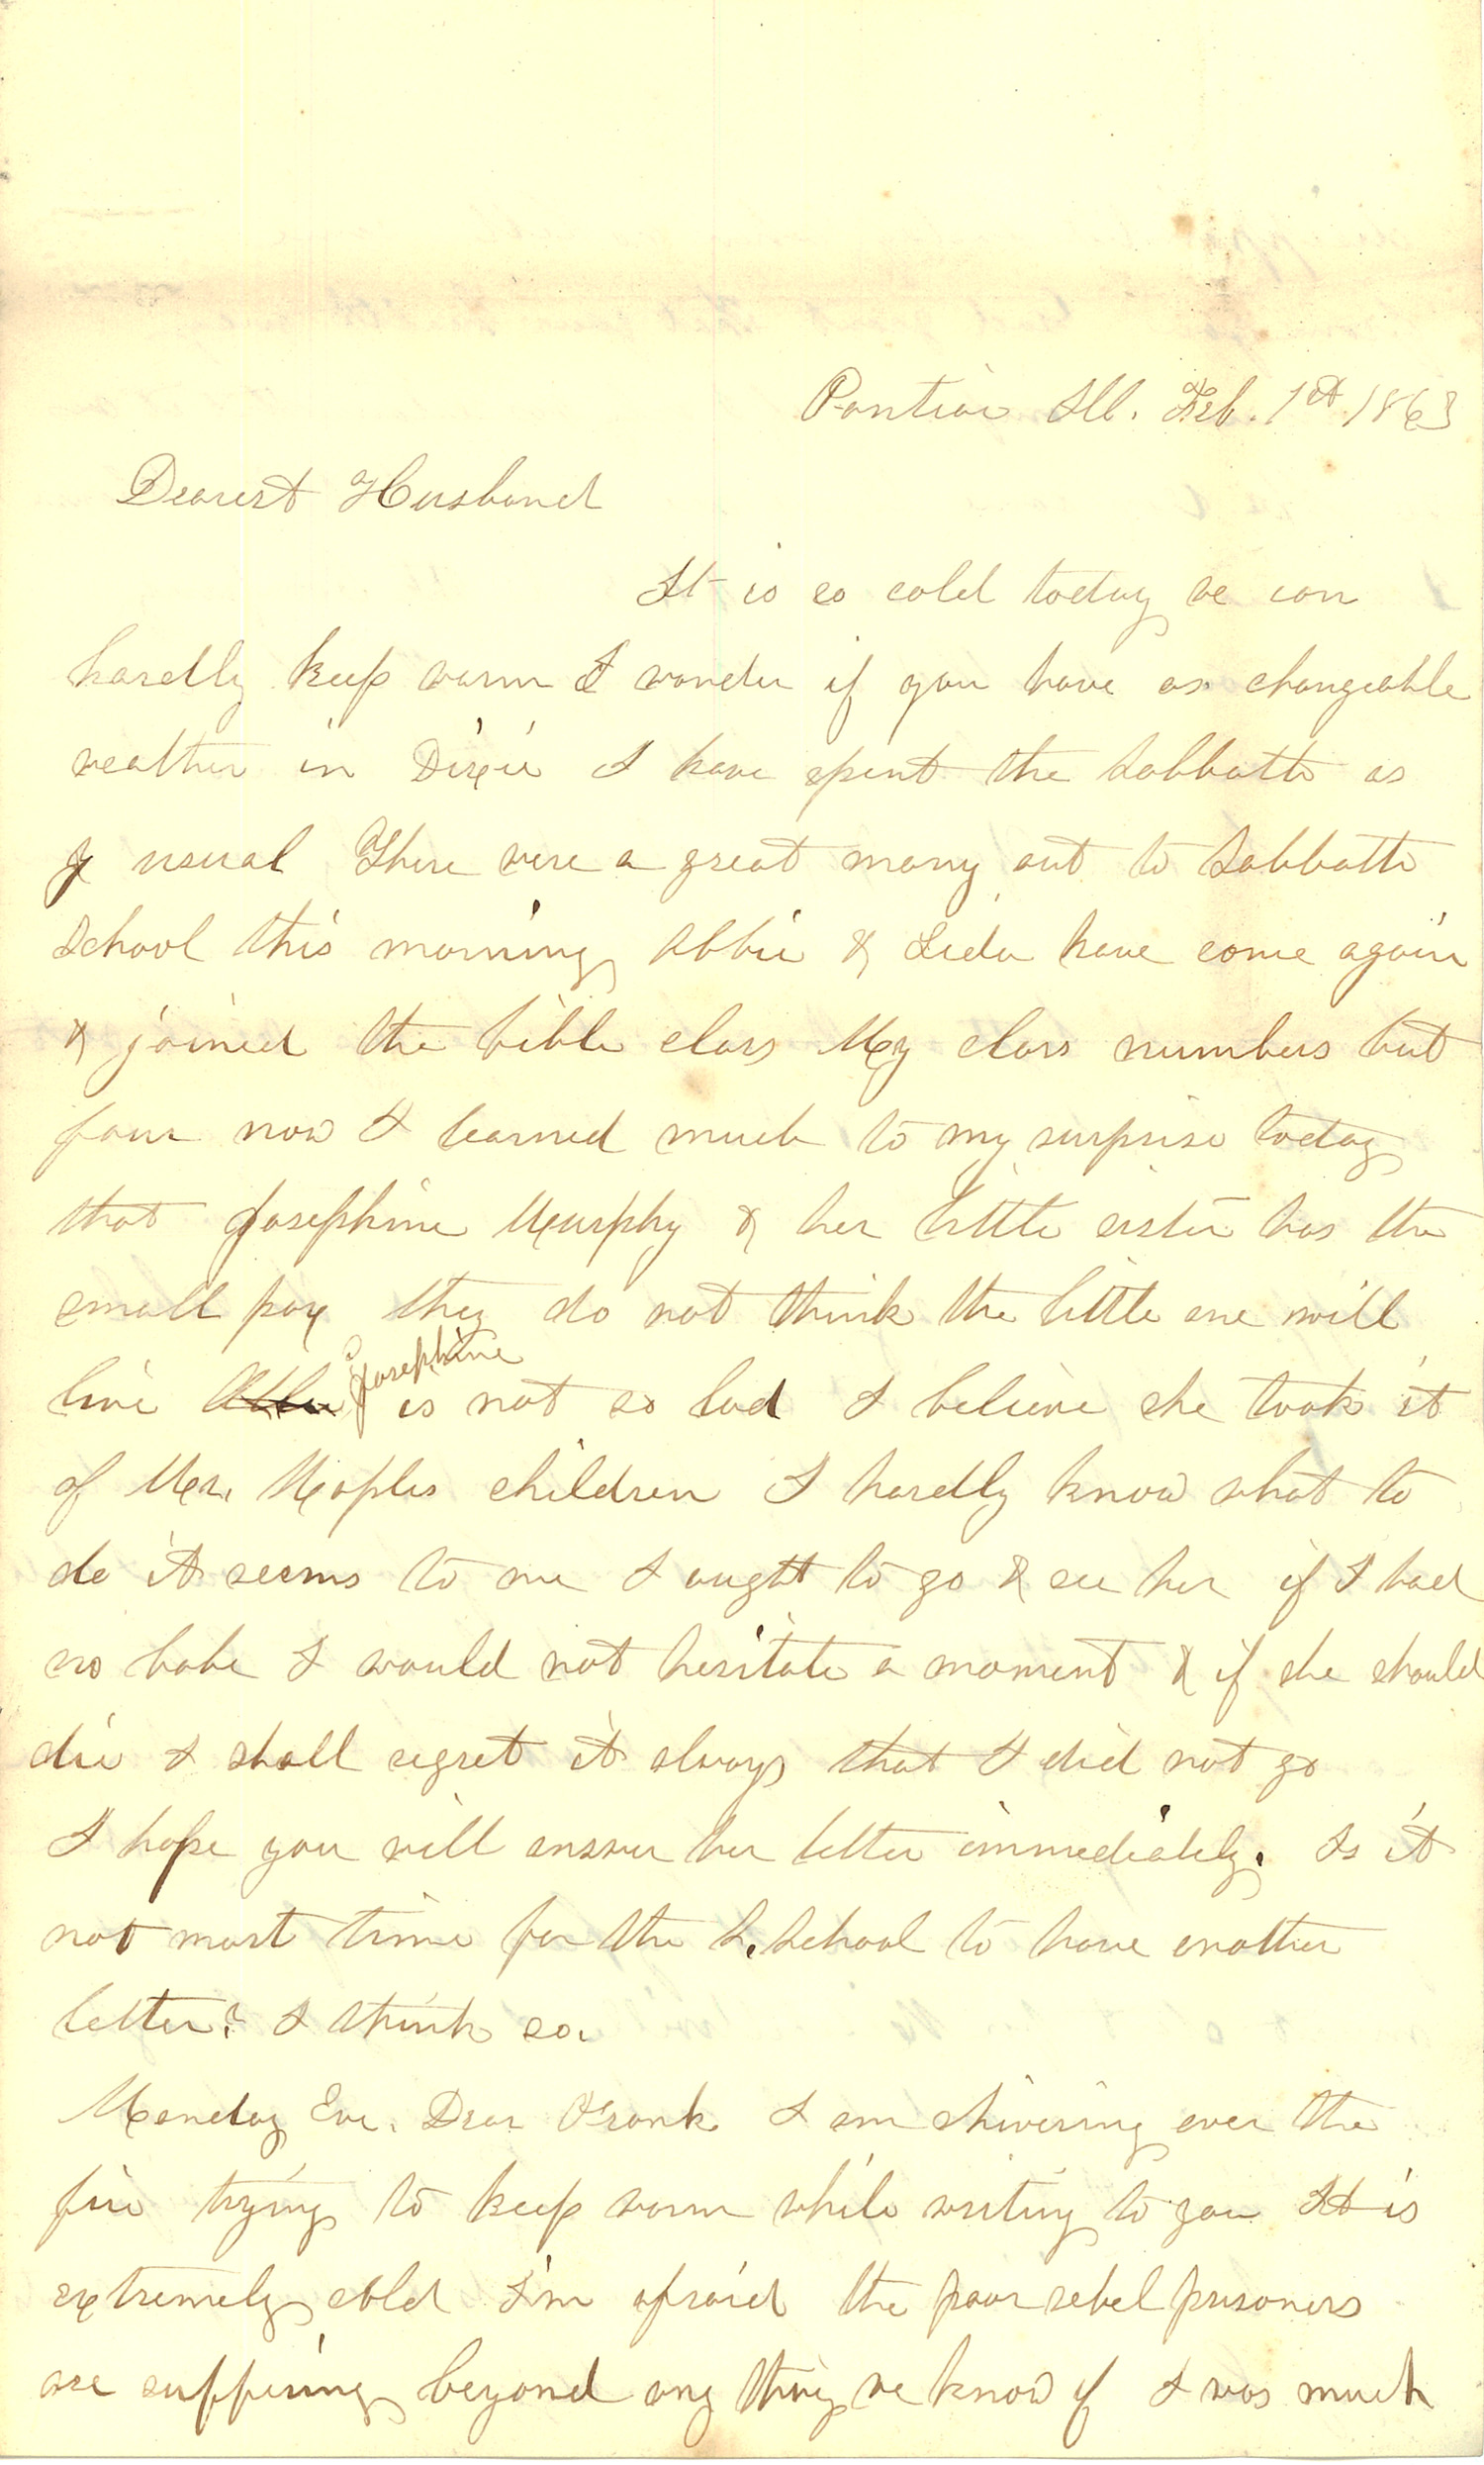 Joseph Culver Letter, February 1, 1863, Page 1